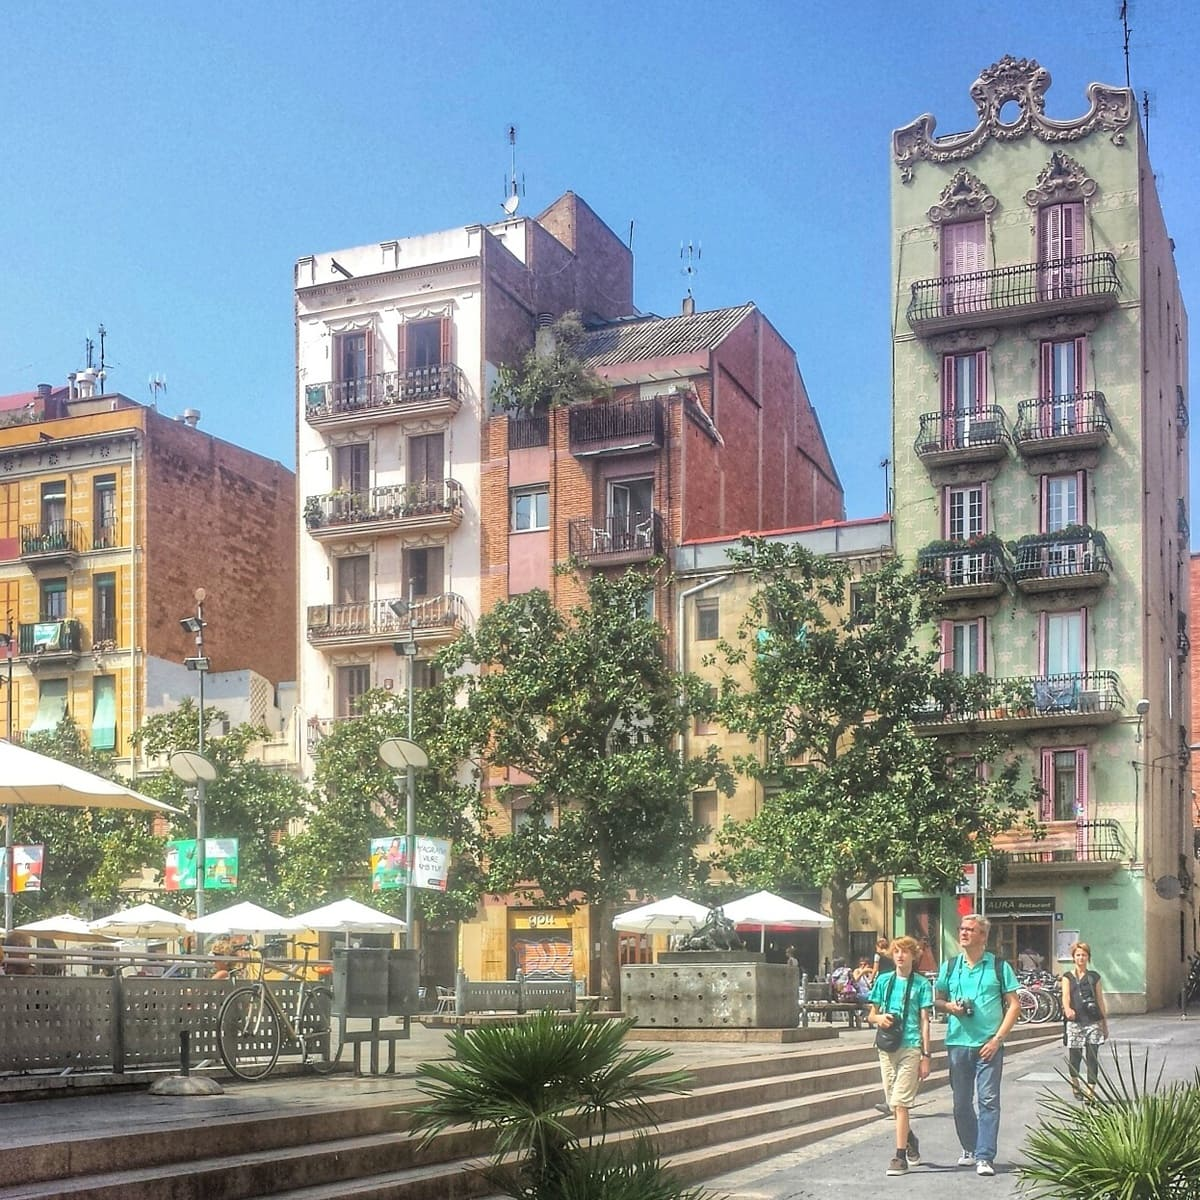 Hotel praktik bakery a sweet place to stay in barcelona for Hotel gracia barcelona